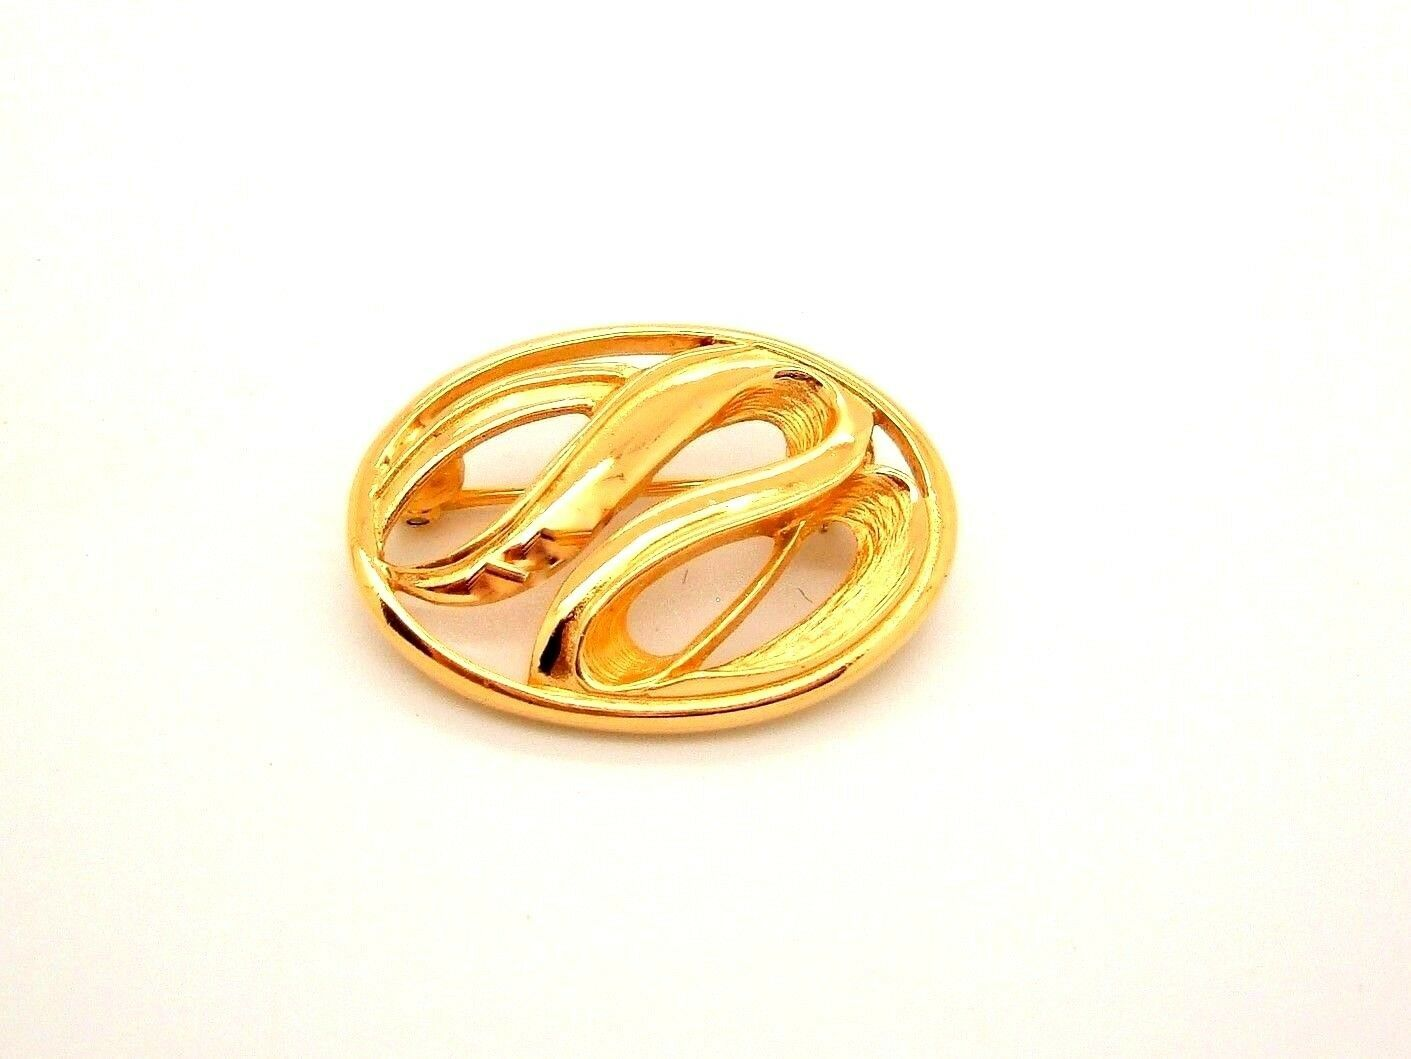 Primary image for Trifari Gold Tone Oval Small Swirl Brooch Pin Abstract Modern vtg